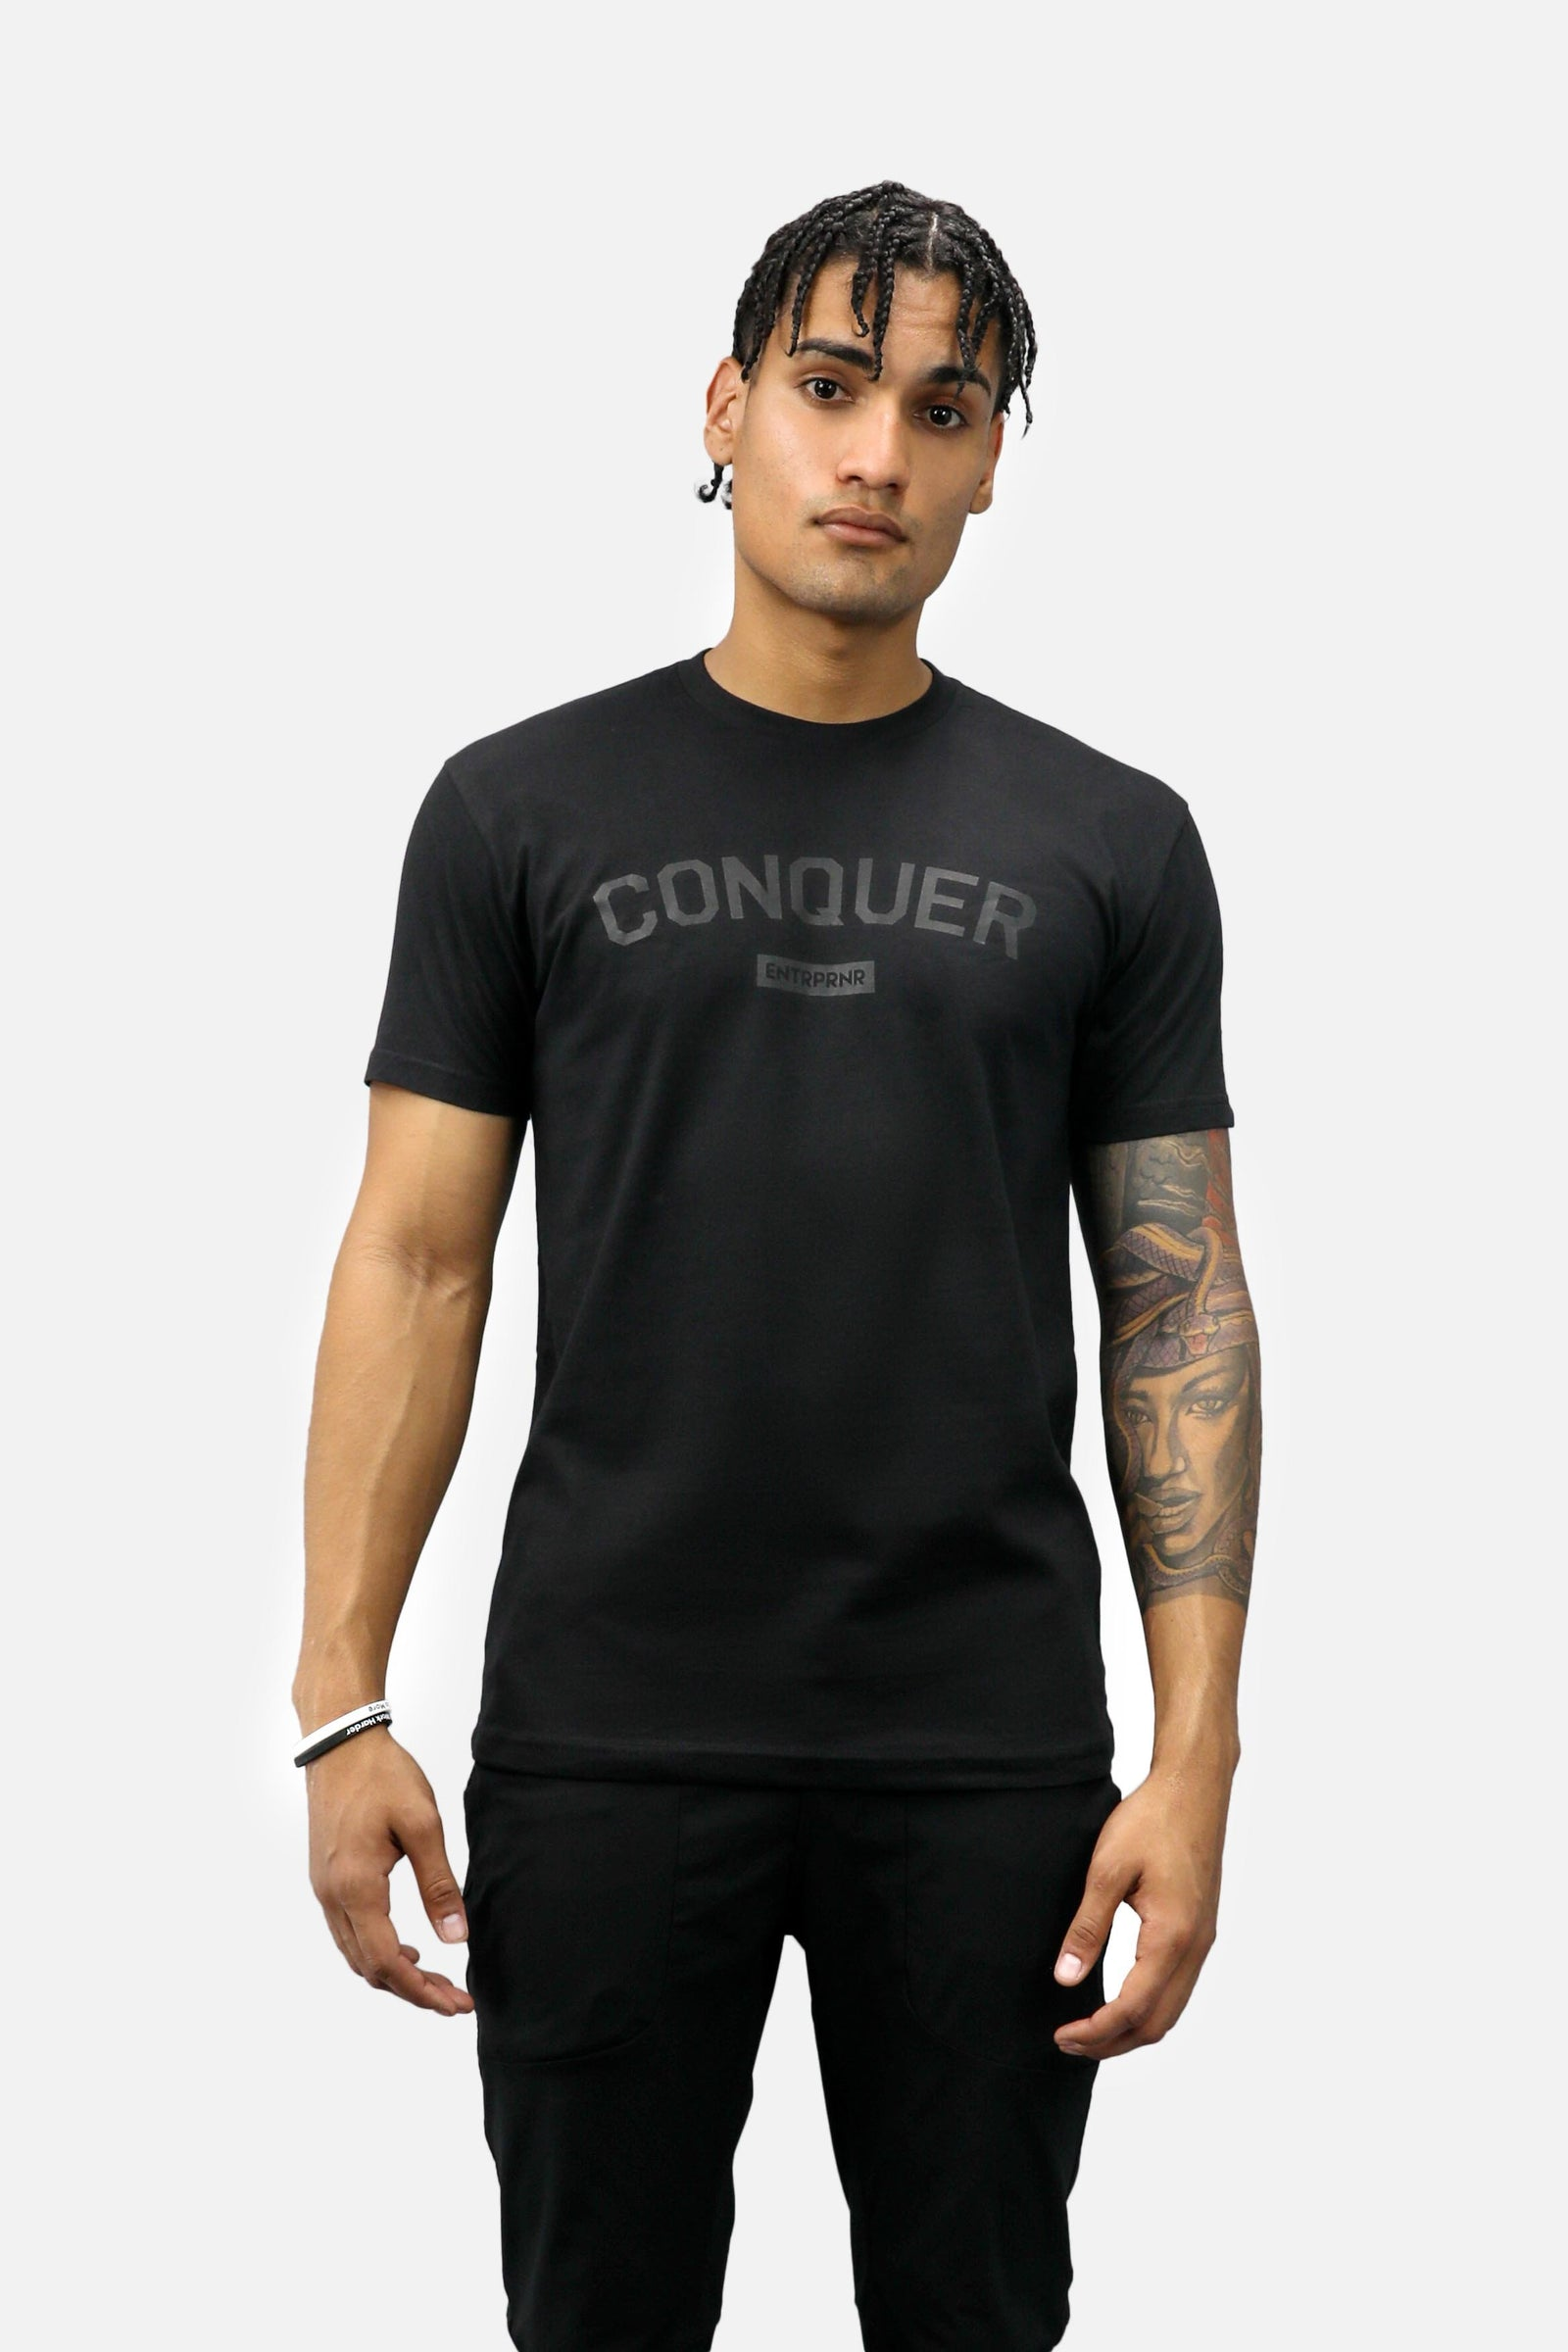 Conquer ENTRPRNR Tee – Blackout - ENTRPRNR® | The Entrepreneur's Clothing Brand. | Stagnancy is the Enemy. Action is King.